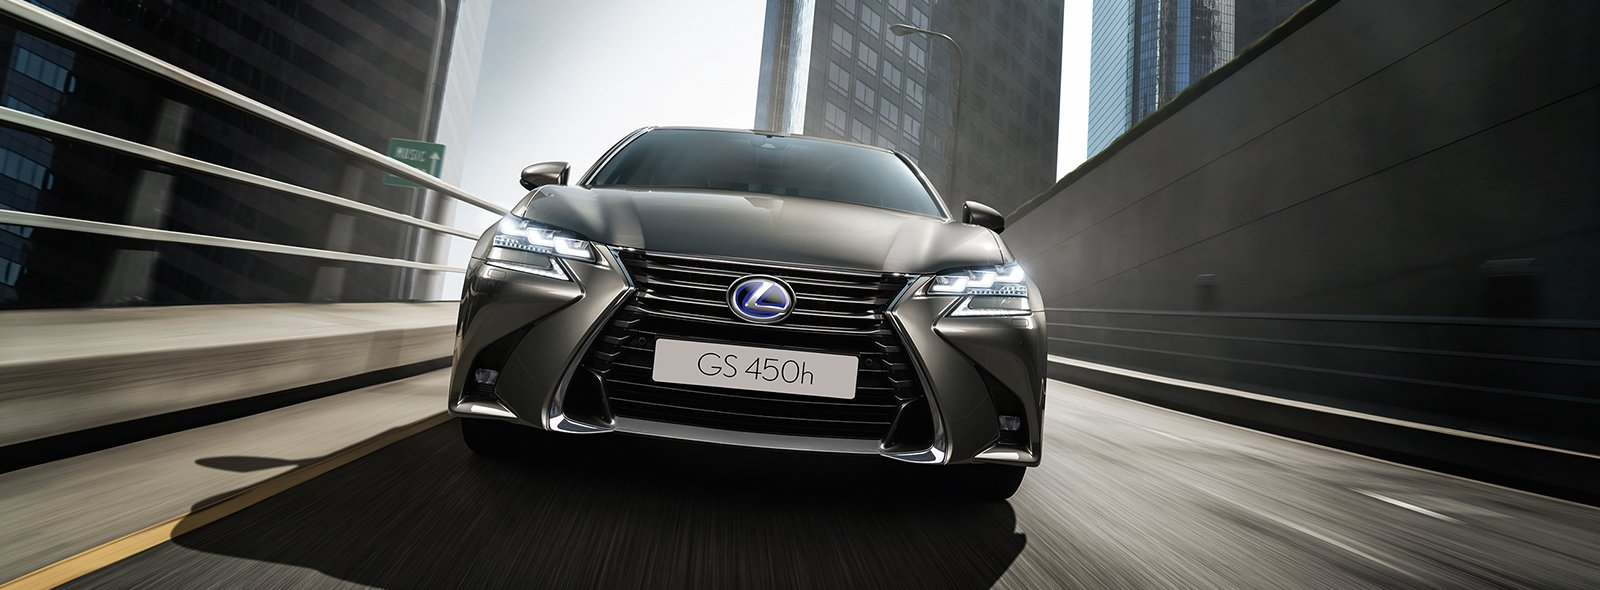 gs450h gallery 001